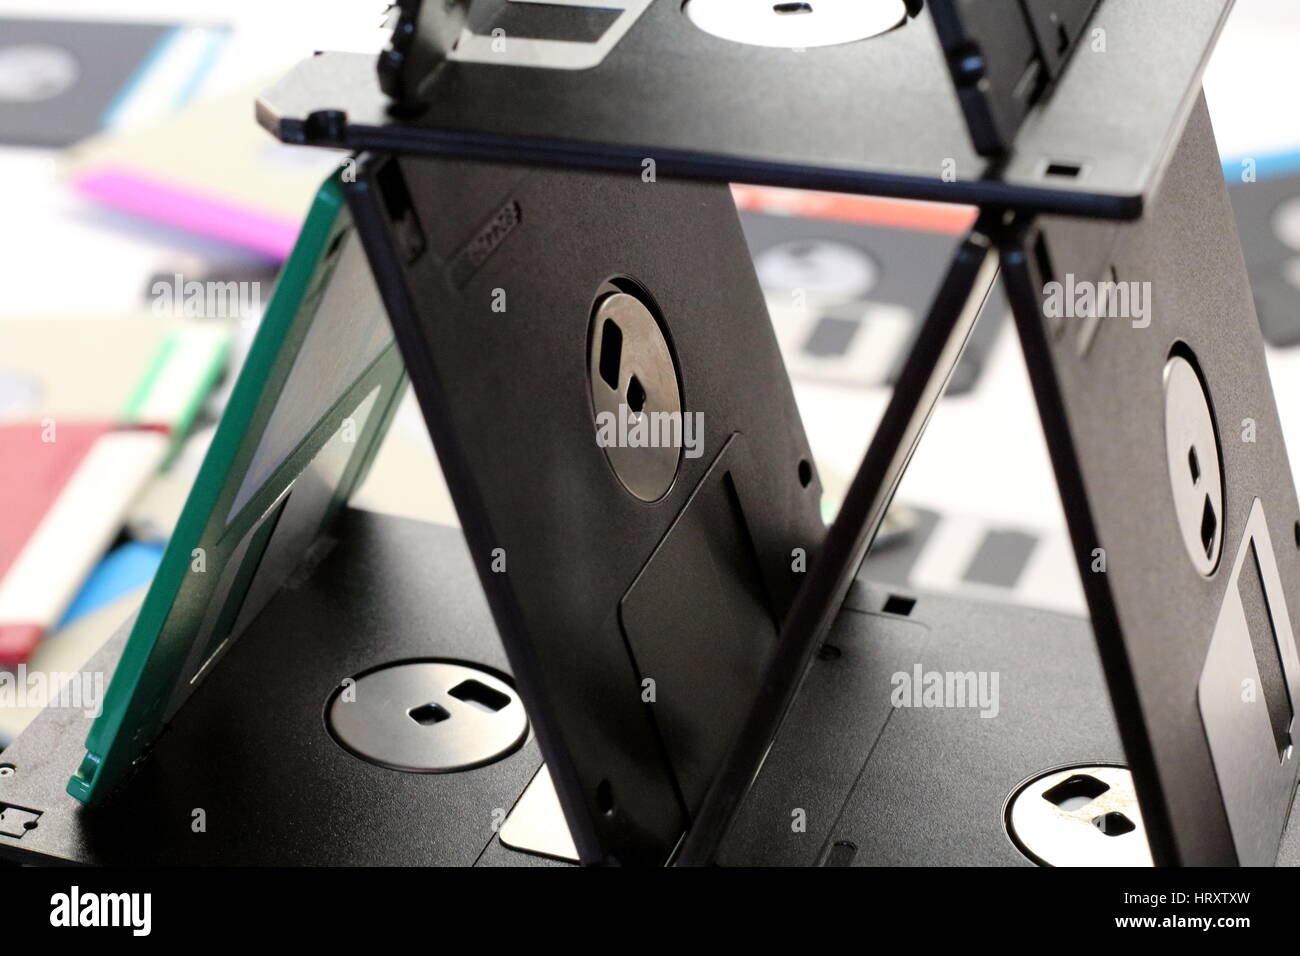 Floppy disk magnetic - Stock Image